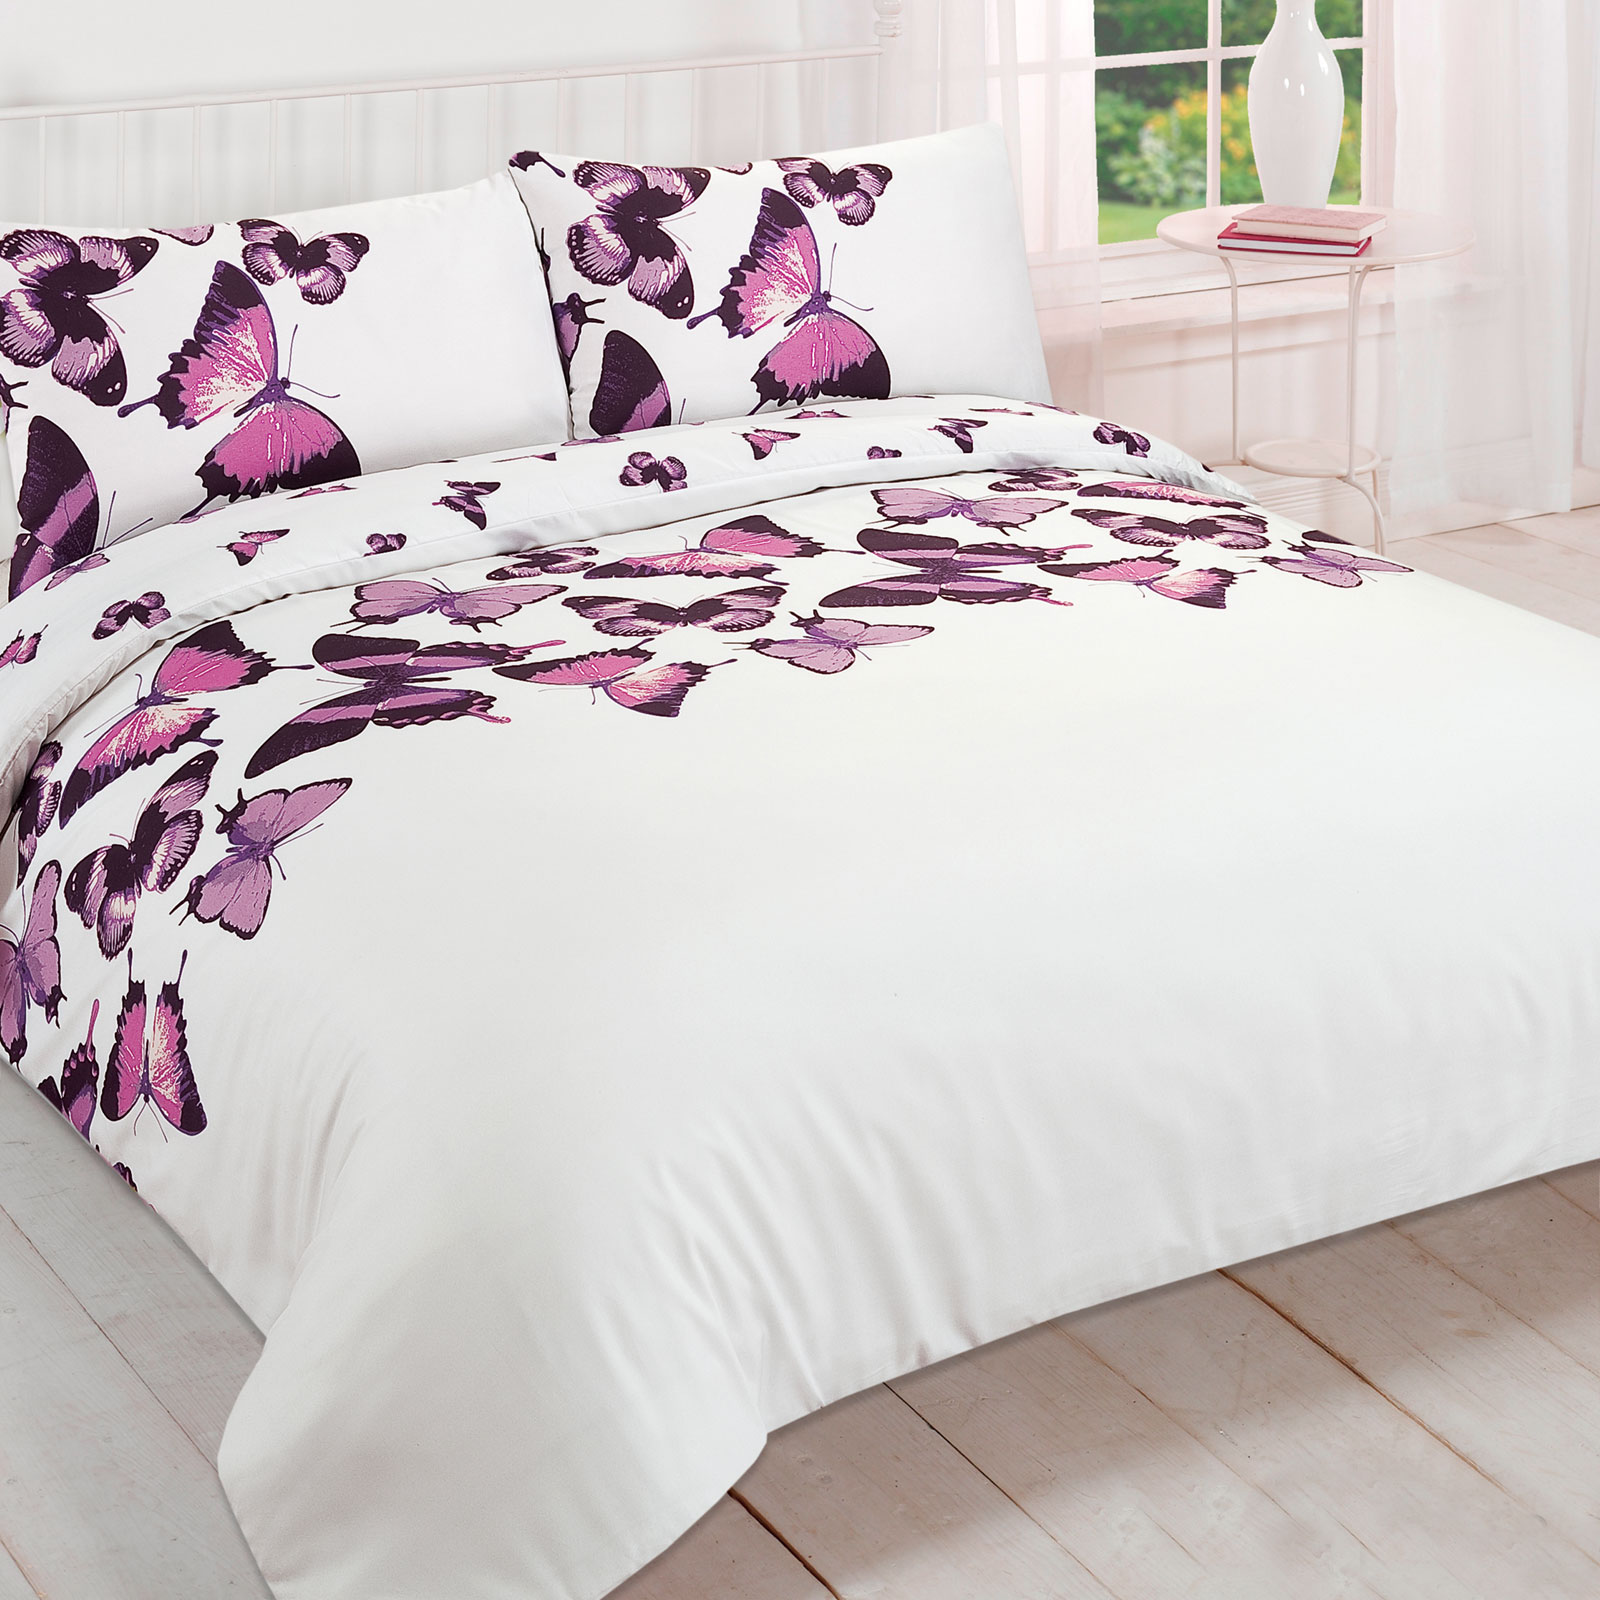 Pretty Bed Covers Pretty Butterfly Duvet Cover Reversible Bedding Set